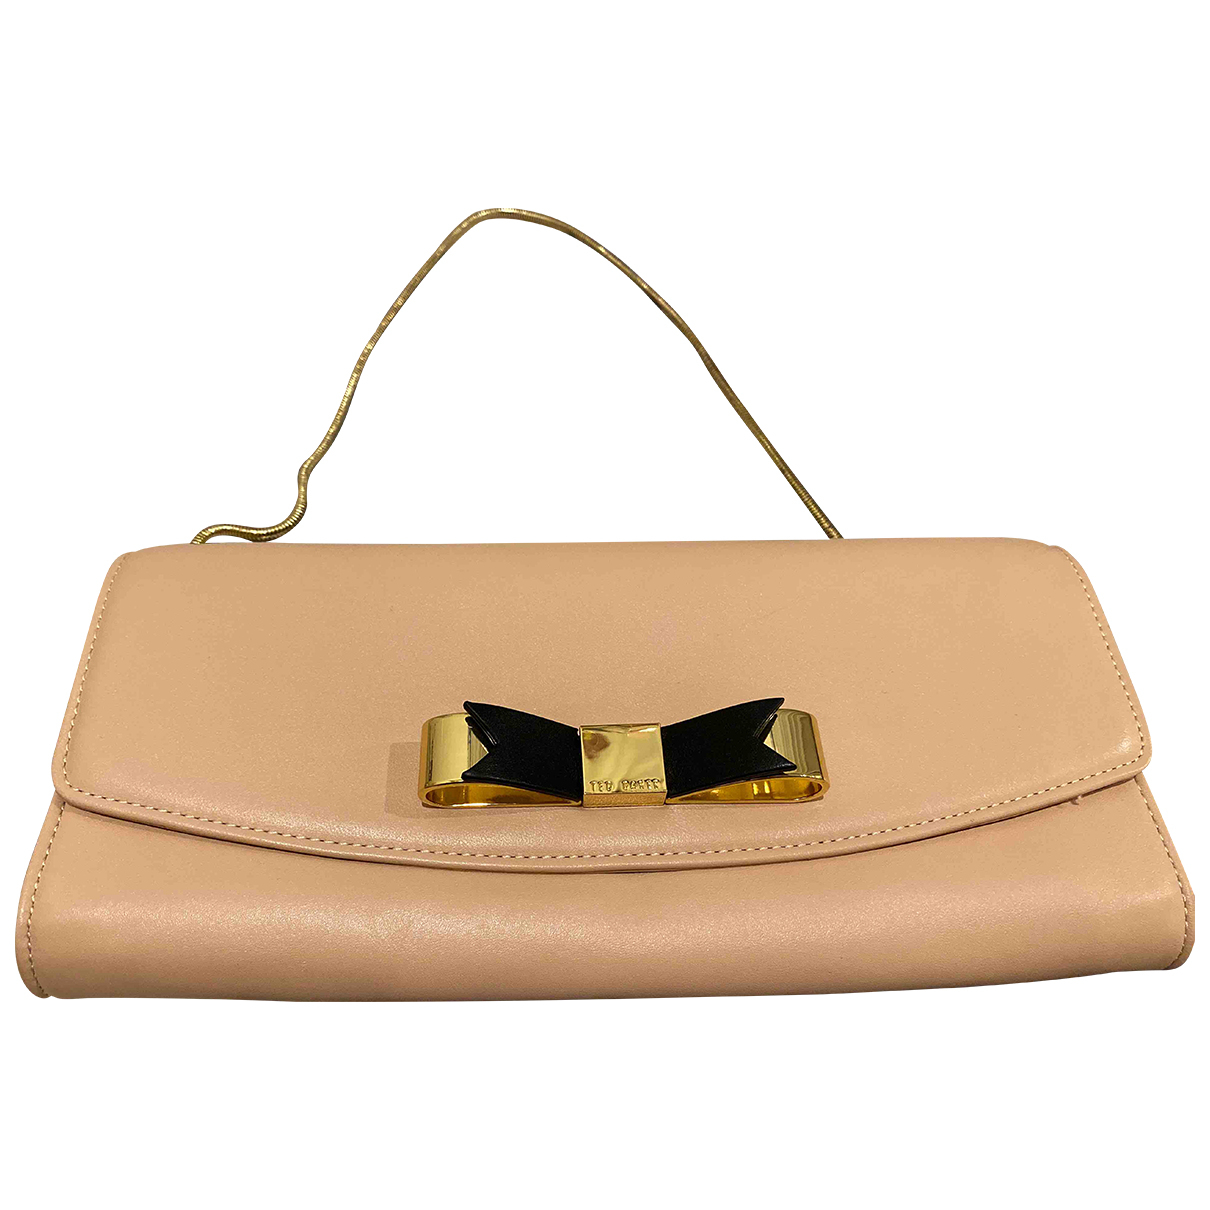 Ted Baker N Pink Leather handbag for Women N